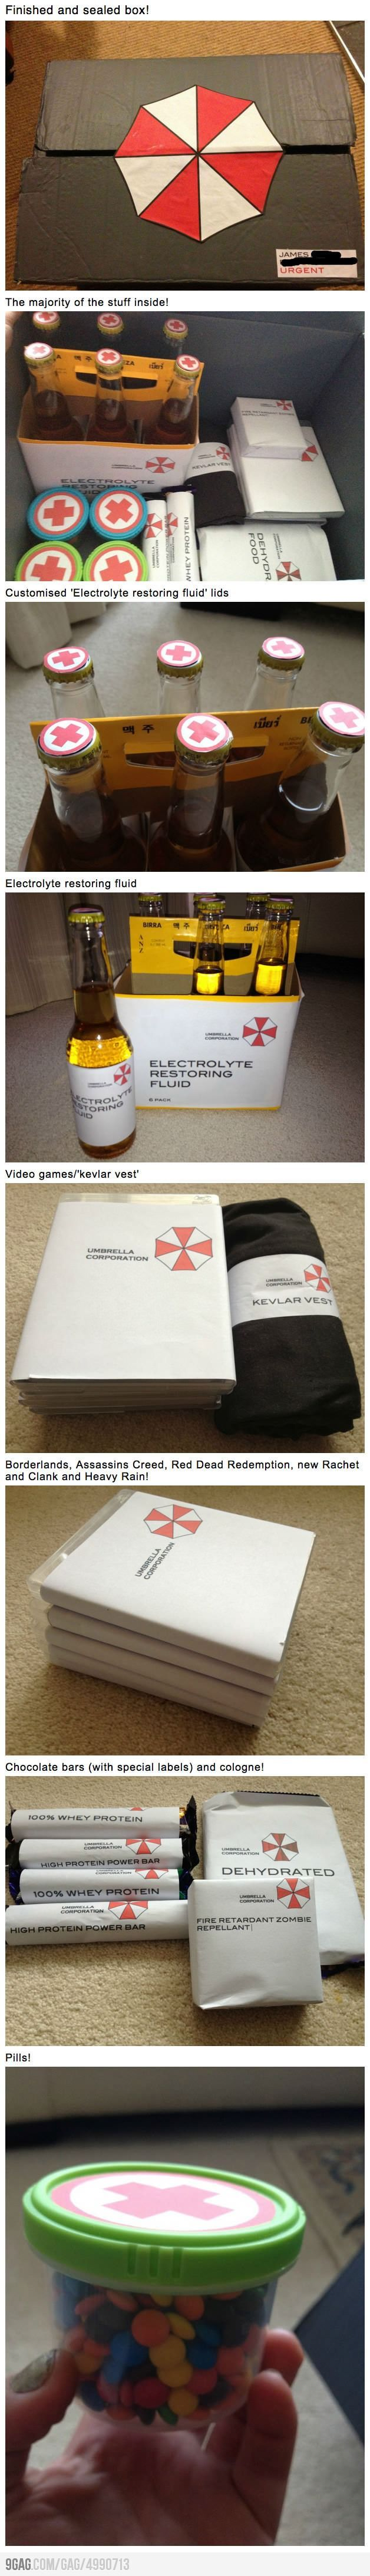 Care package inspired by Resident Evil. Could be fun to theme a gift in a similiar vein.